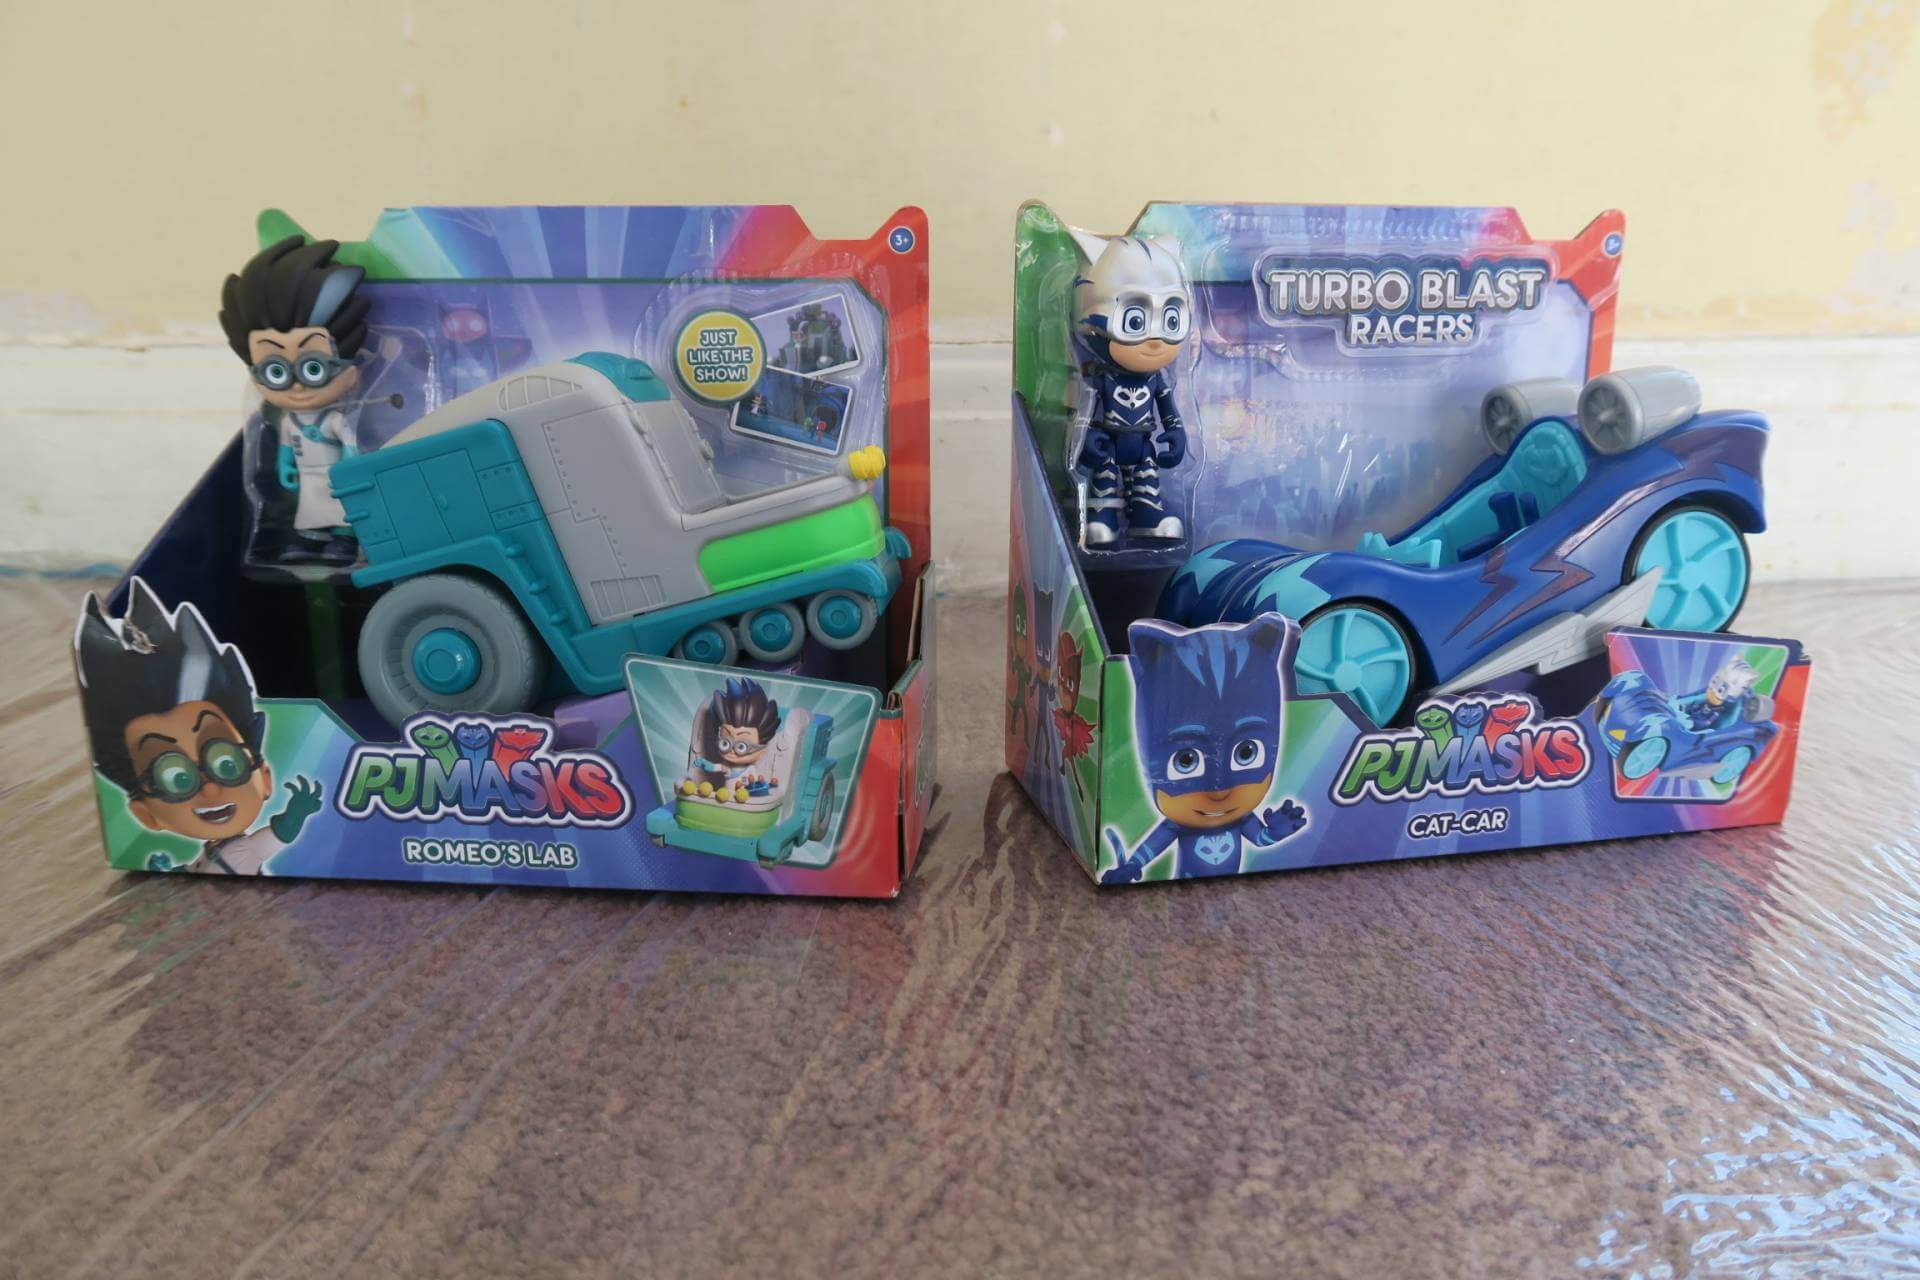 pj-masks-2018-turbo-blasters-cars-figures-sets-toys-review-midwifeandlife.com